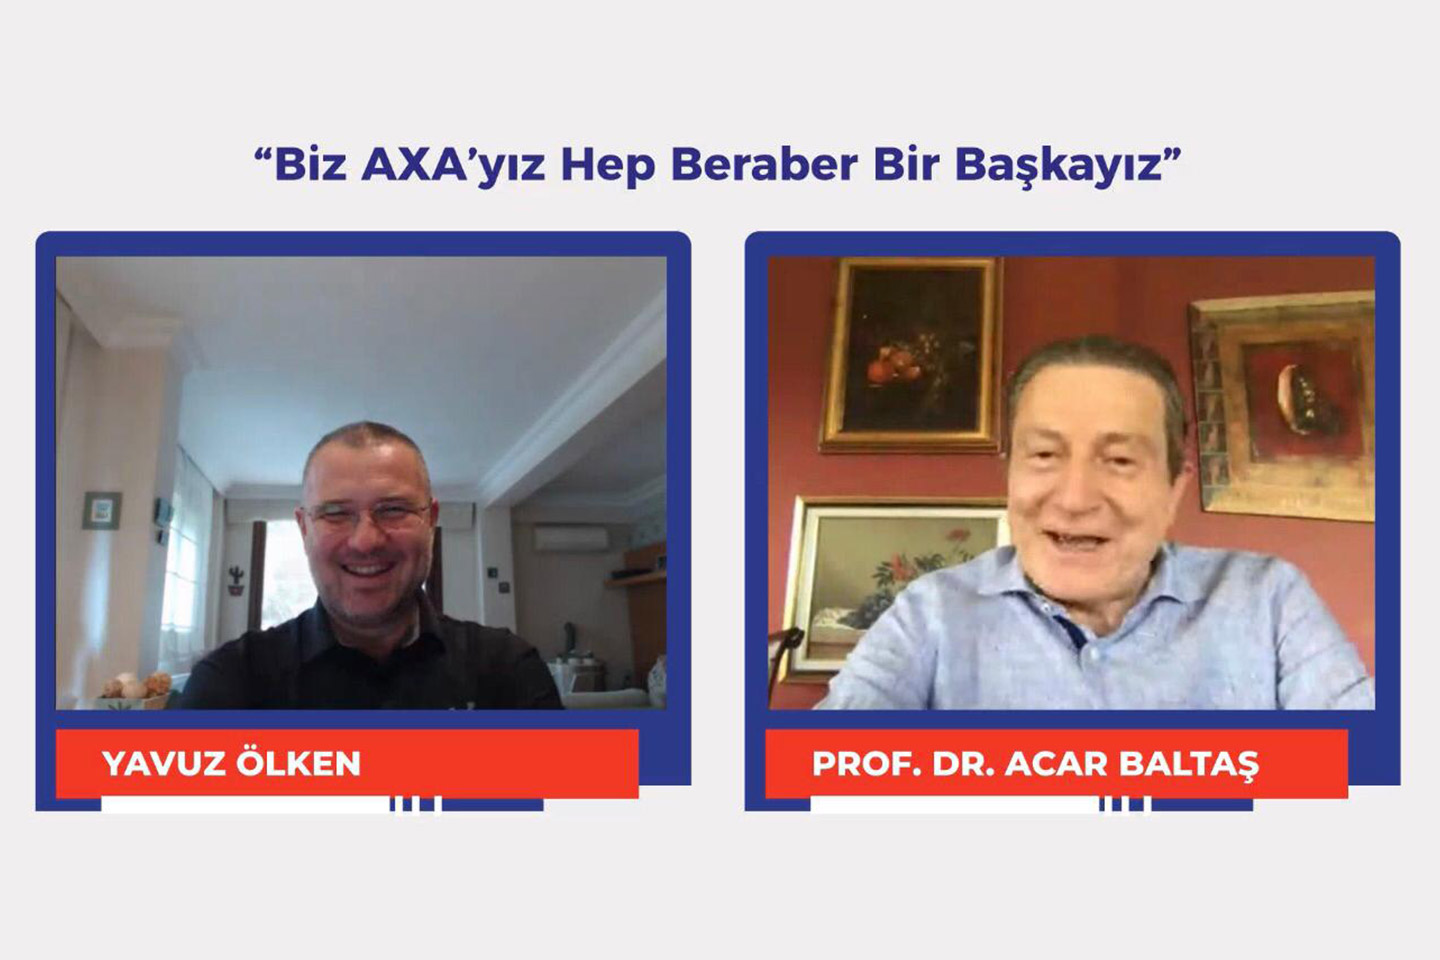 Ceo Talks Yavuz Ölken ve Prof. Dr. Acar Baltaş